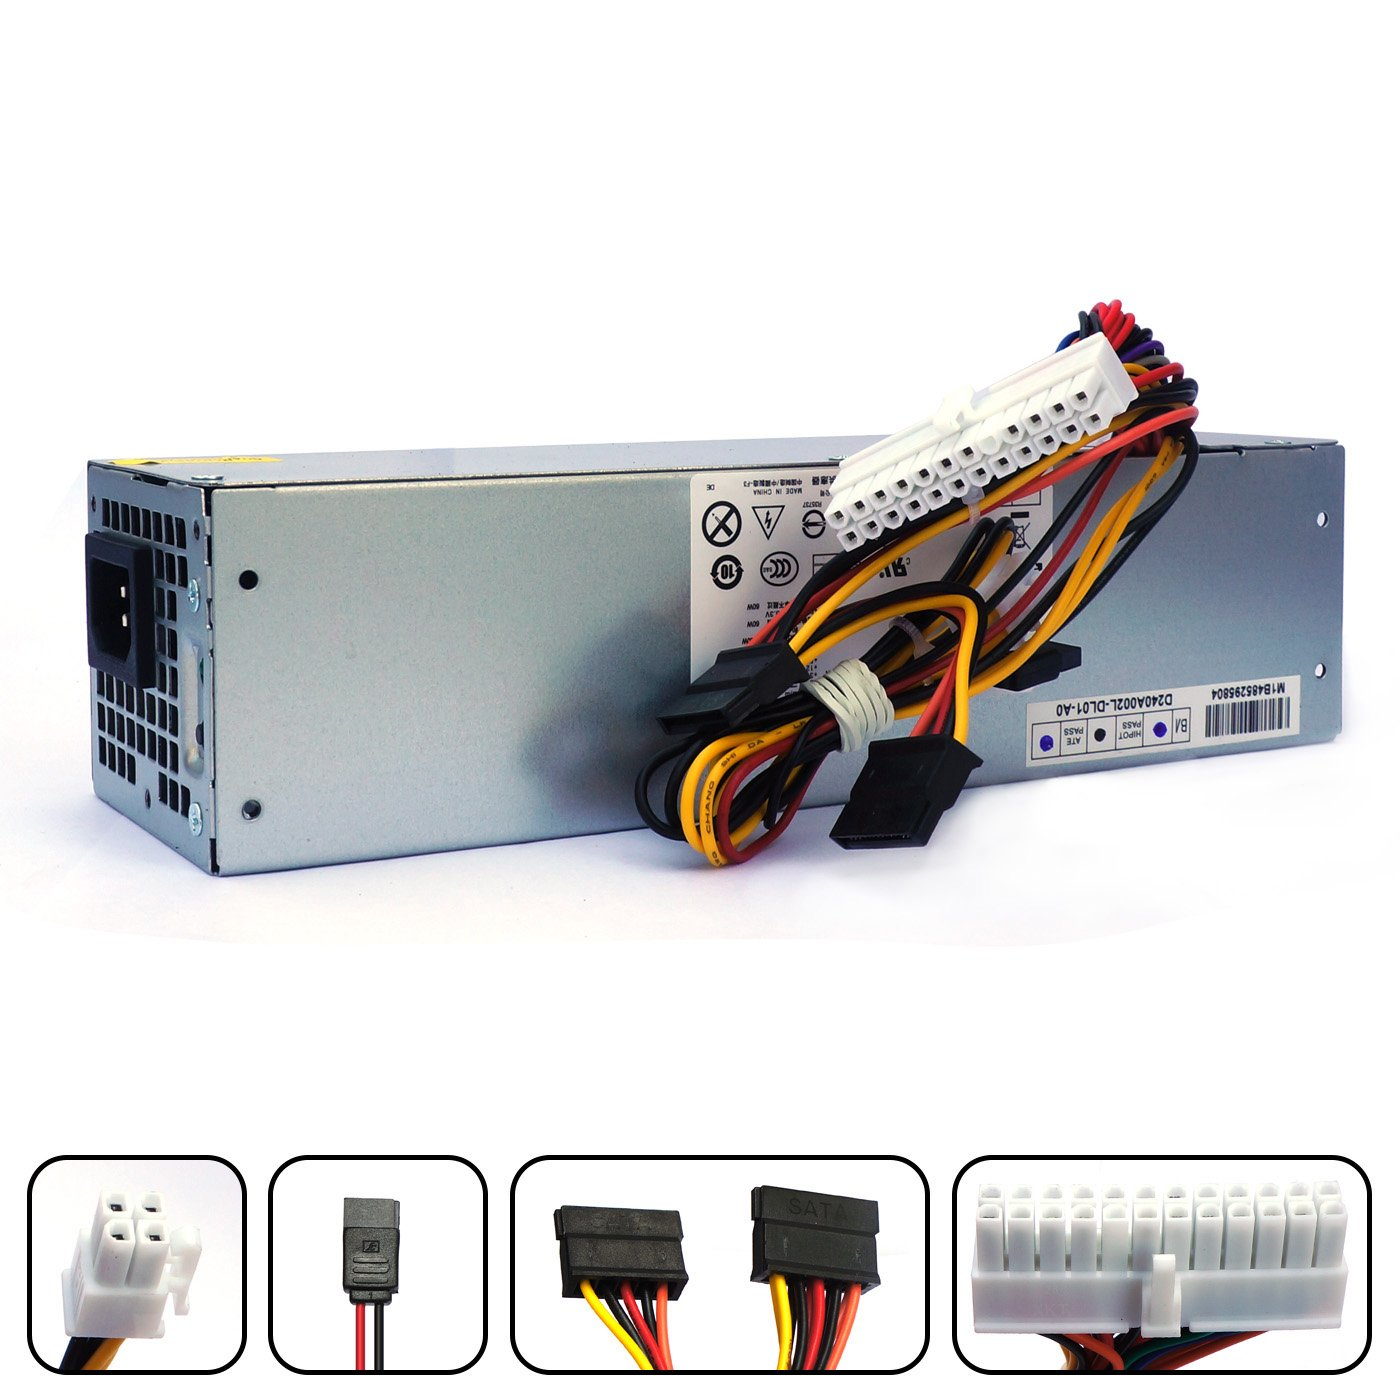 POINWER 3WN11 H240AS-00 709MT 240W Optiplex 7010 SFF Power Supply For Dell Optiplex 390 790 990 3010 9010 Small Form Factor Systems CCCVC 3RK5T 2TXYM F79TD L240AS-00 H240ES-00 D240ES-00 AC240AS-00 by POINWER (Image #1)